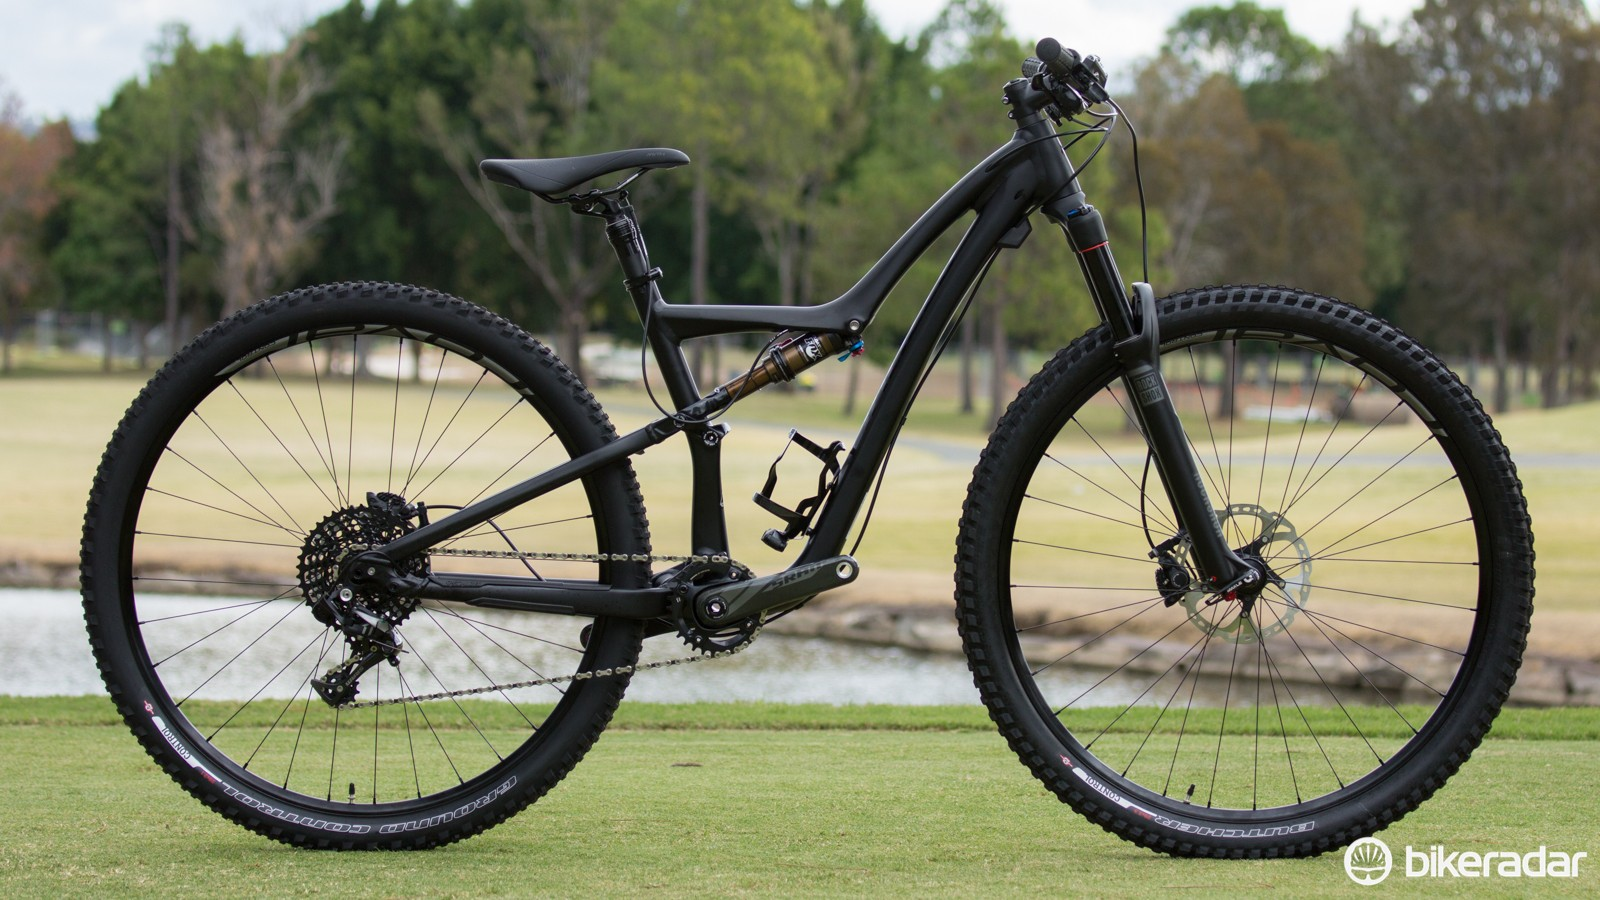 The brand-new Specialized Rumor Expert Evo 29, offering a trail-ready 120mm of suspension travel